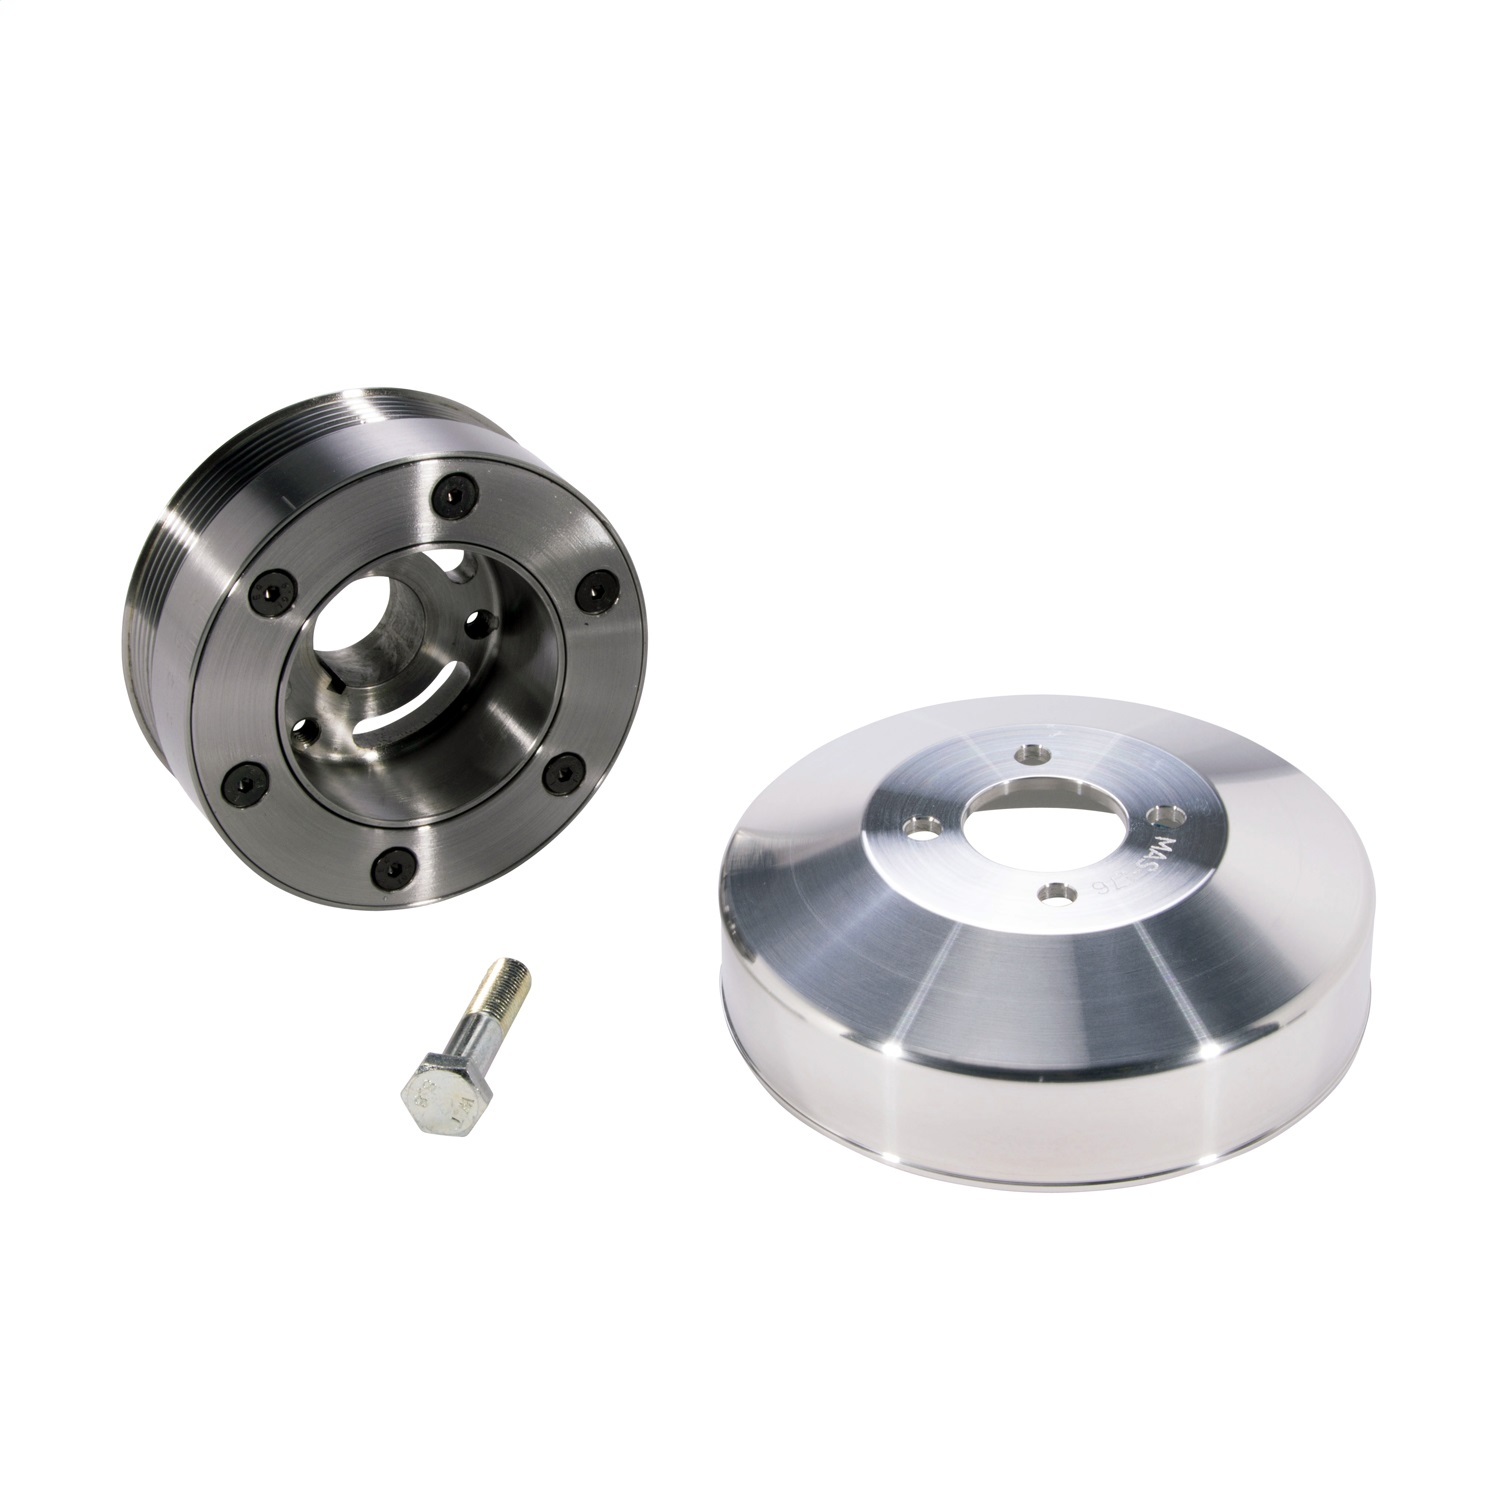 BBK Performance 1653 Power-Plus Series Underdrive Pulley System Fits Mustang